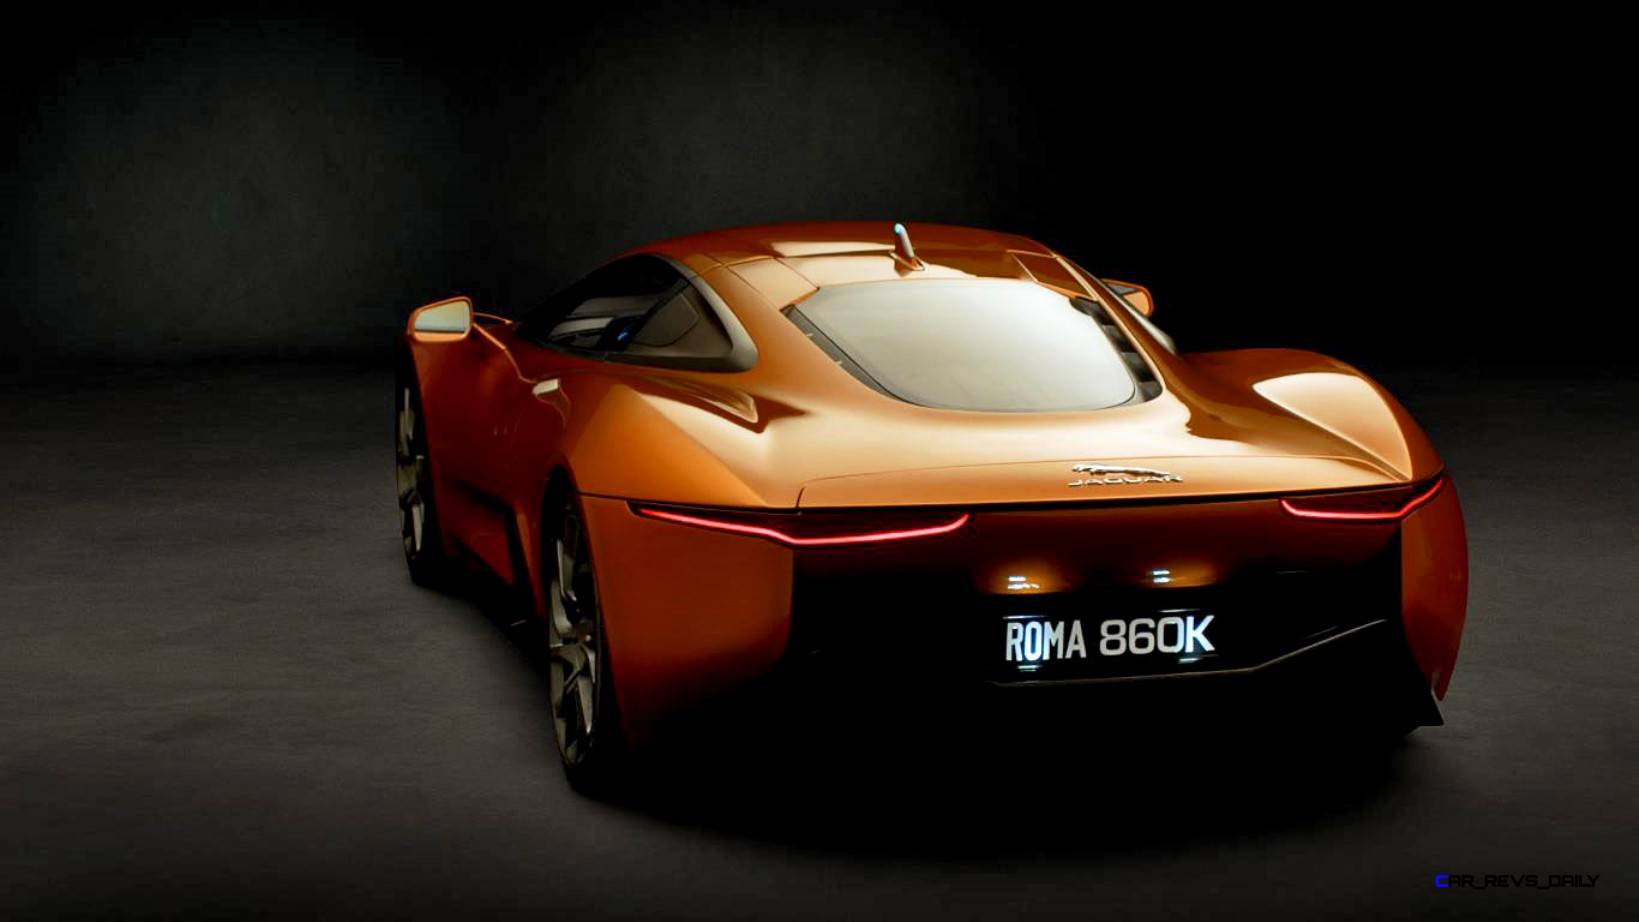 007 spectre bond cars jaguar cx 75 orange 17 click to open largest resolution image publicscrutiny